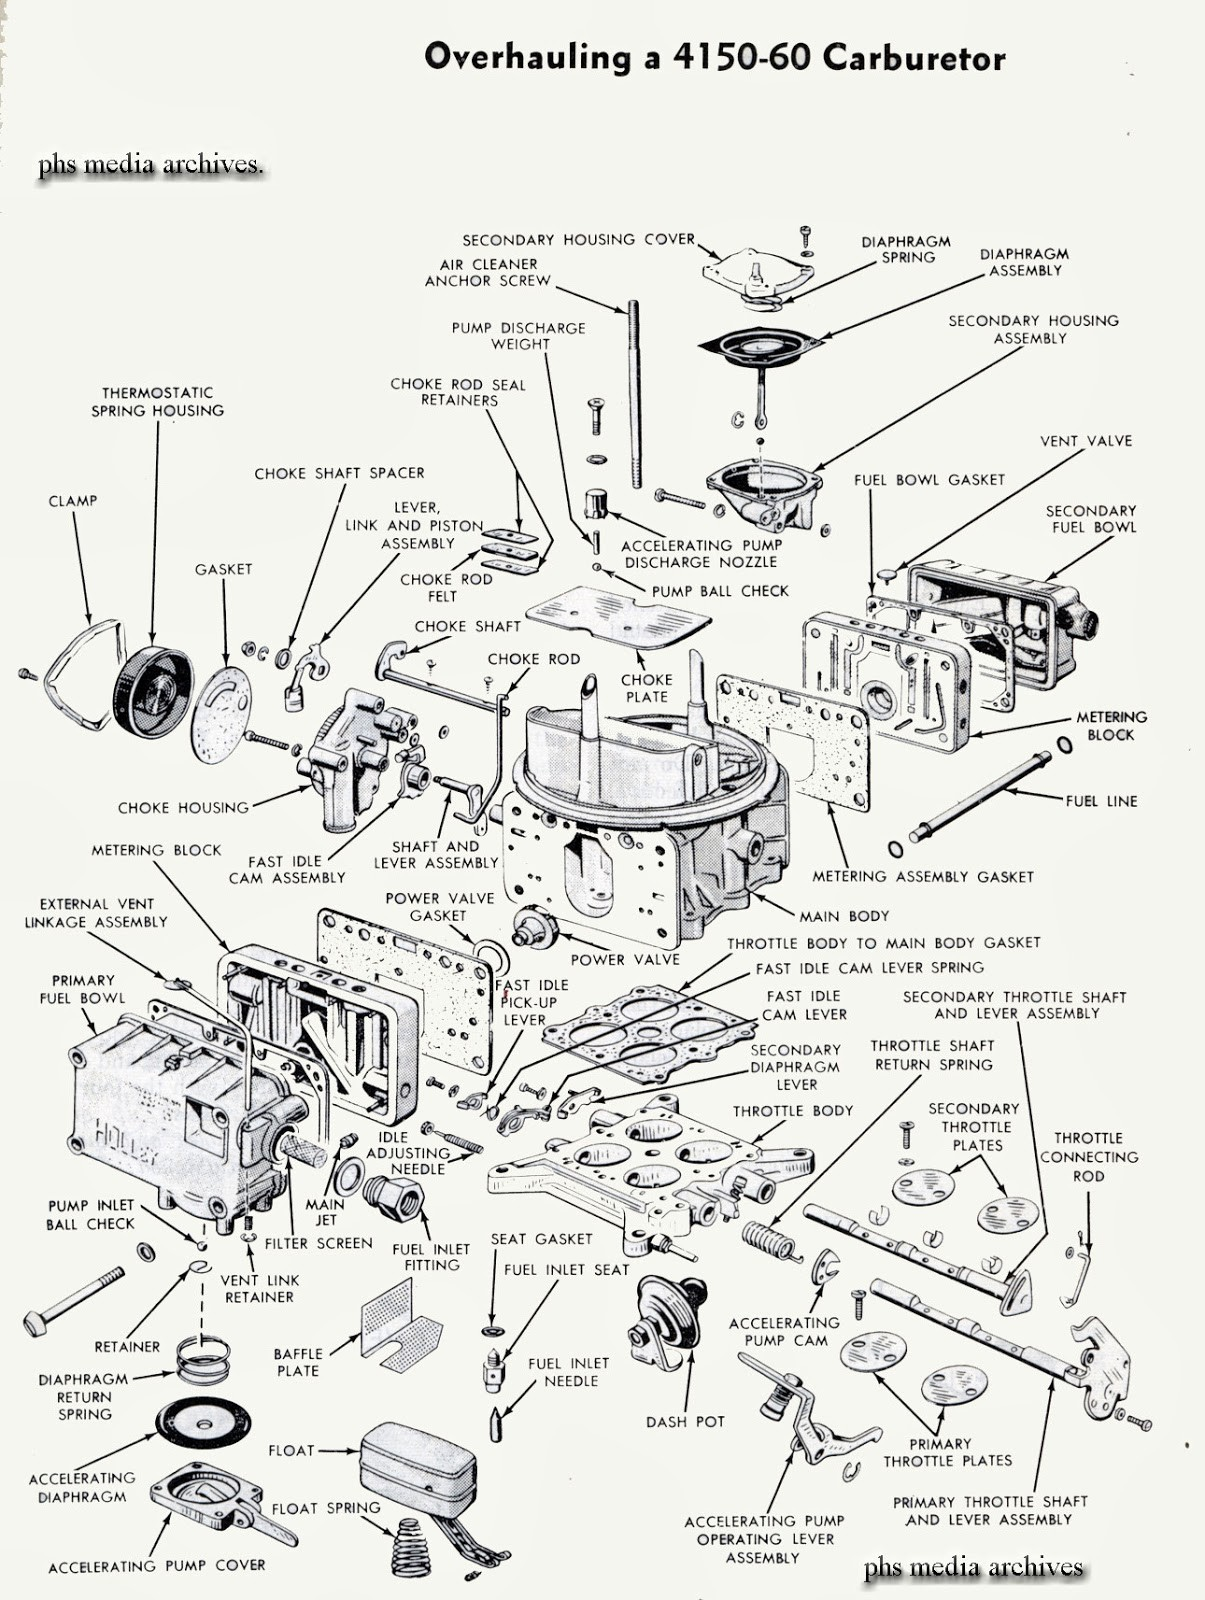 Wiring Schematic for A Holly 650 Carburator Automatic Choke Na 8656] Terrain Also Holley Carb Vacuum Port Diagram Of Wiring Schematic for A Holly 650 Carburator Automatic Choke